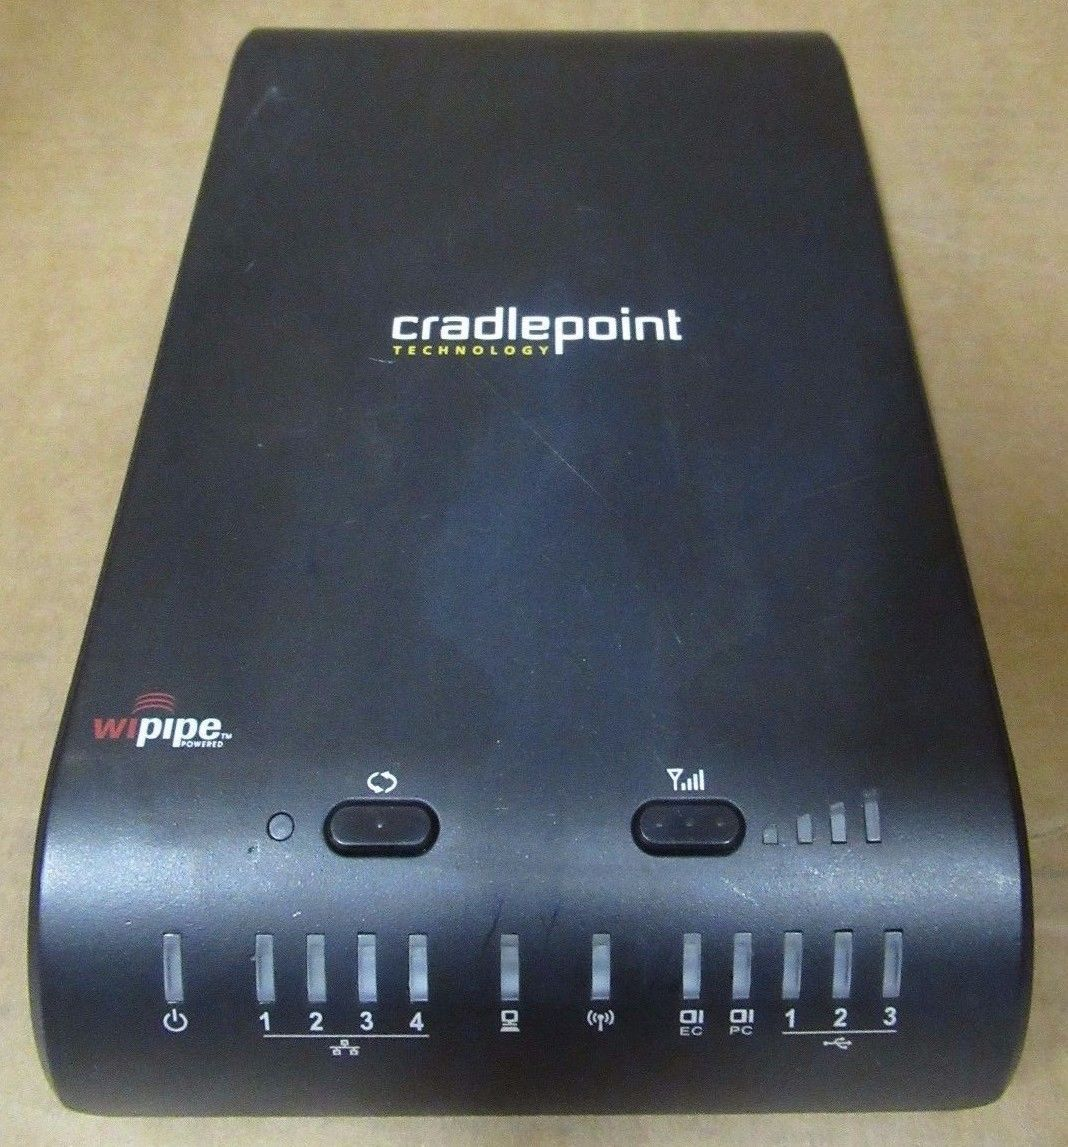 Cradlepoint 1200 Mobile Mission Critical Broadband Router 10